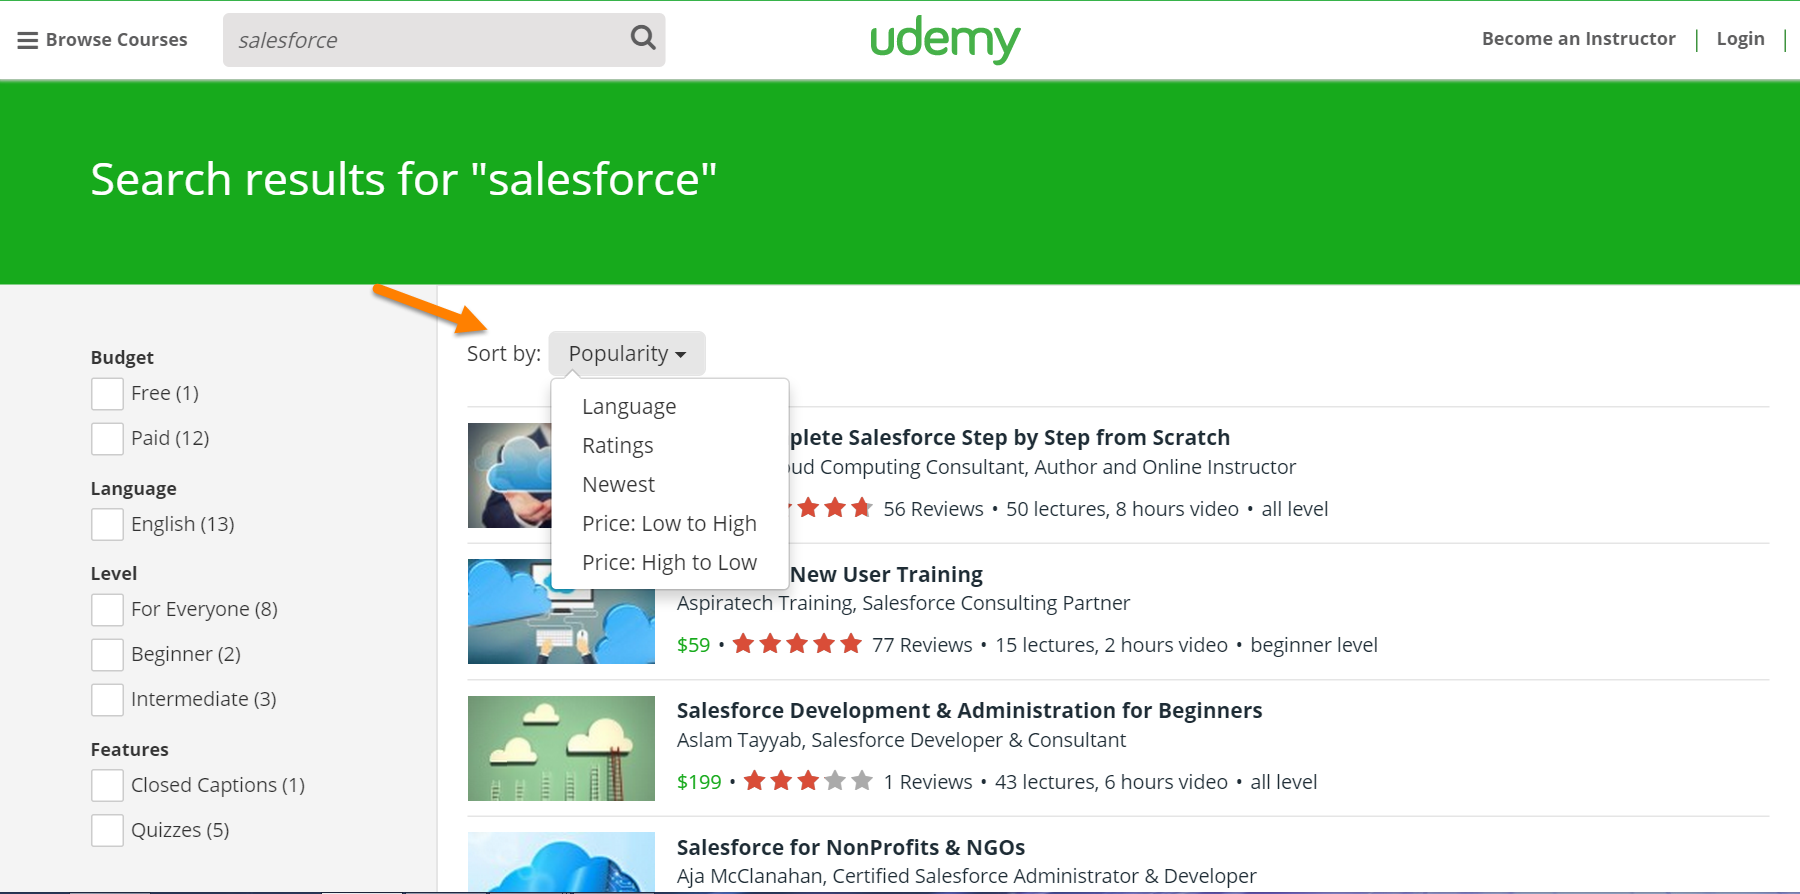 Udemy Salesforce Search